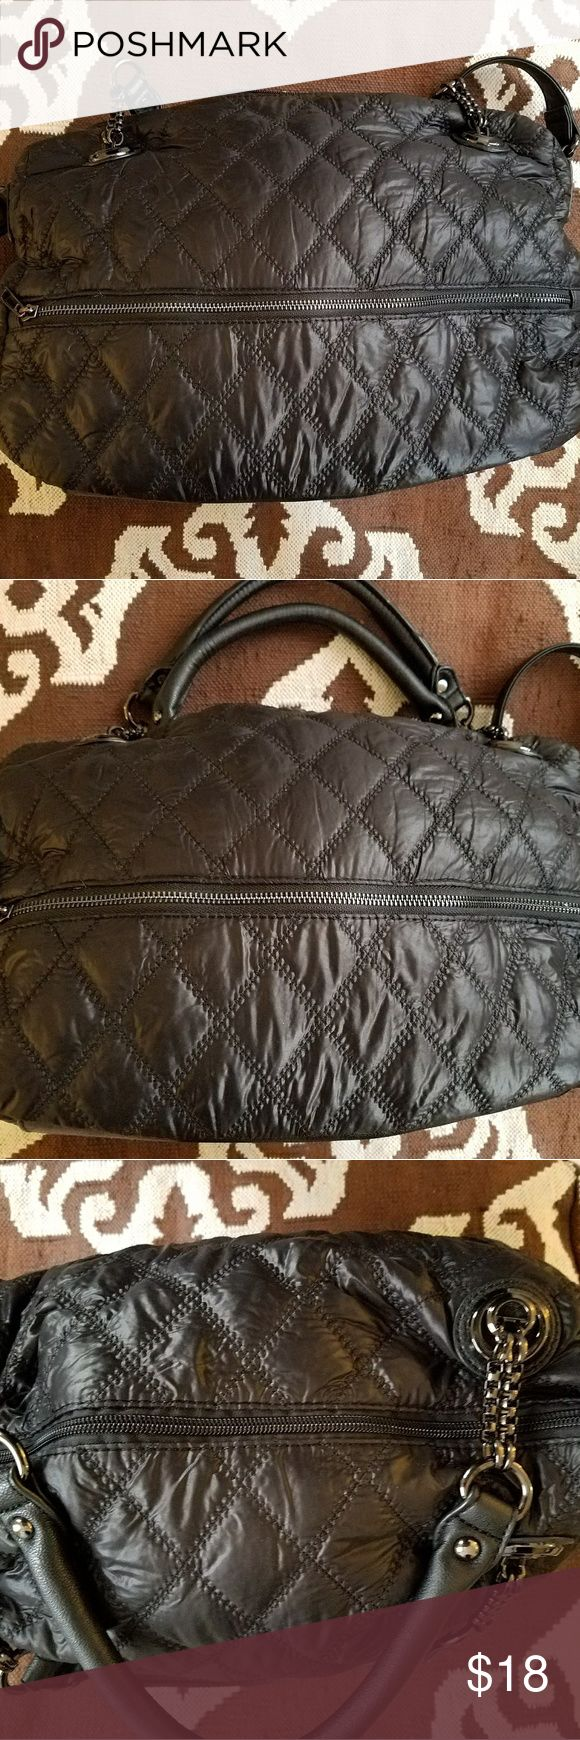 "Quilted light weight bag Quilted light weight bag.  Can be worn cross body  (long strap) or held with handles. Great metal hardware.  In like new condition.  No brand noted on bag. 17"" x 12.5"" Bags"